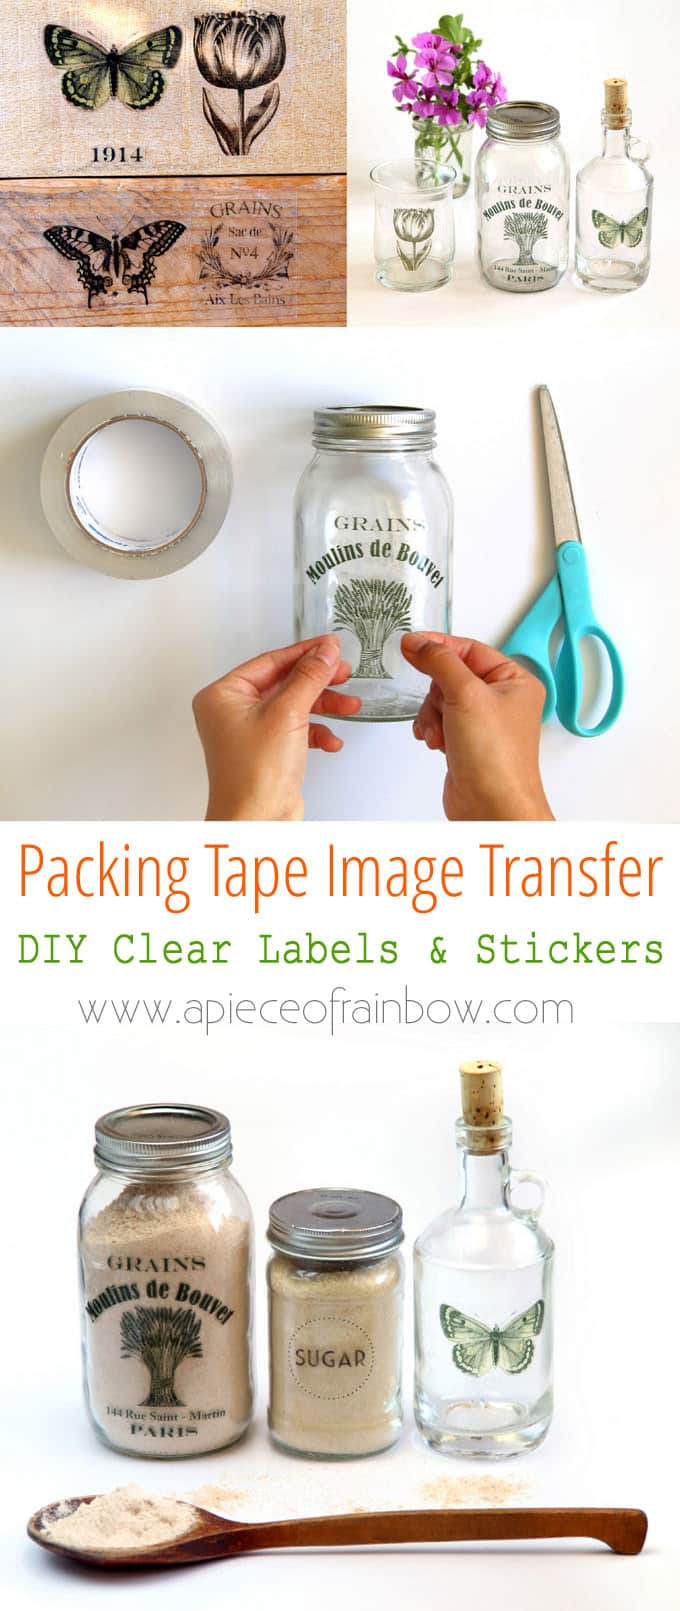 packing-tape-image-transfer-labels-apieceofrainbowblog-1